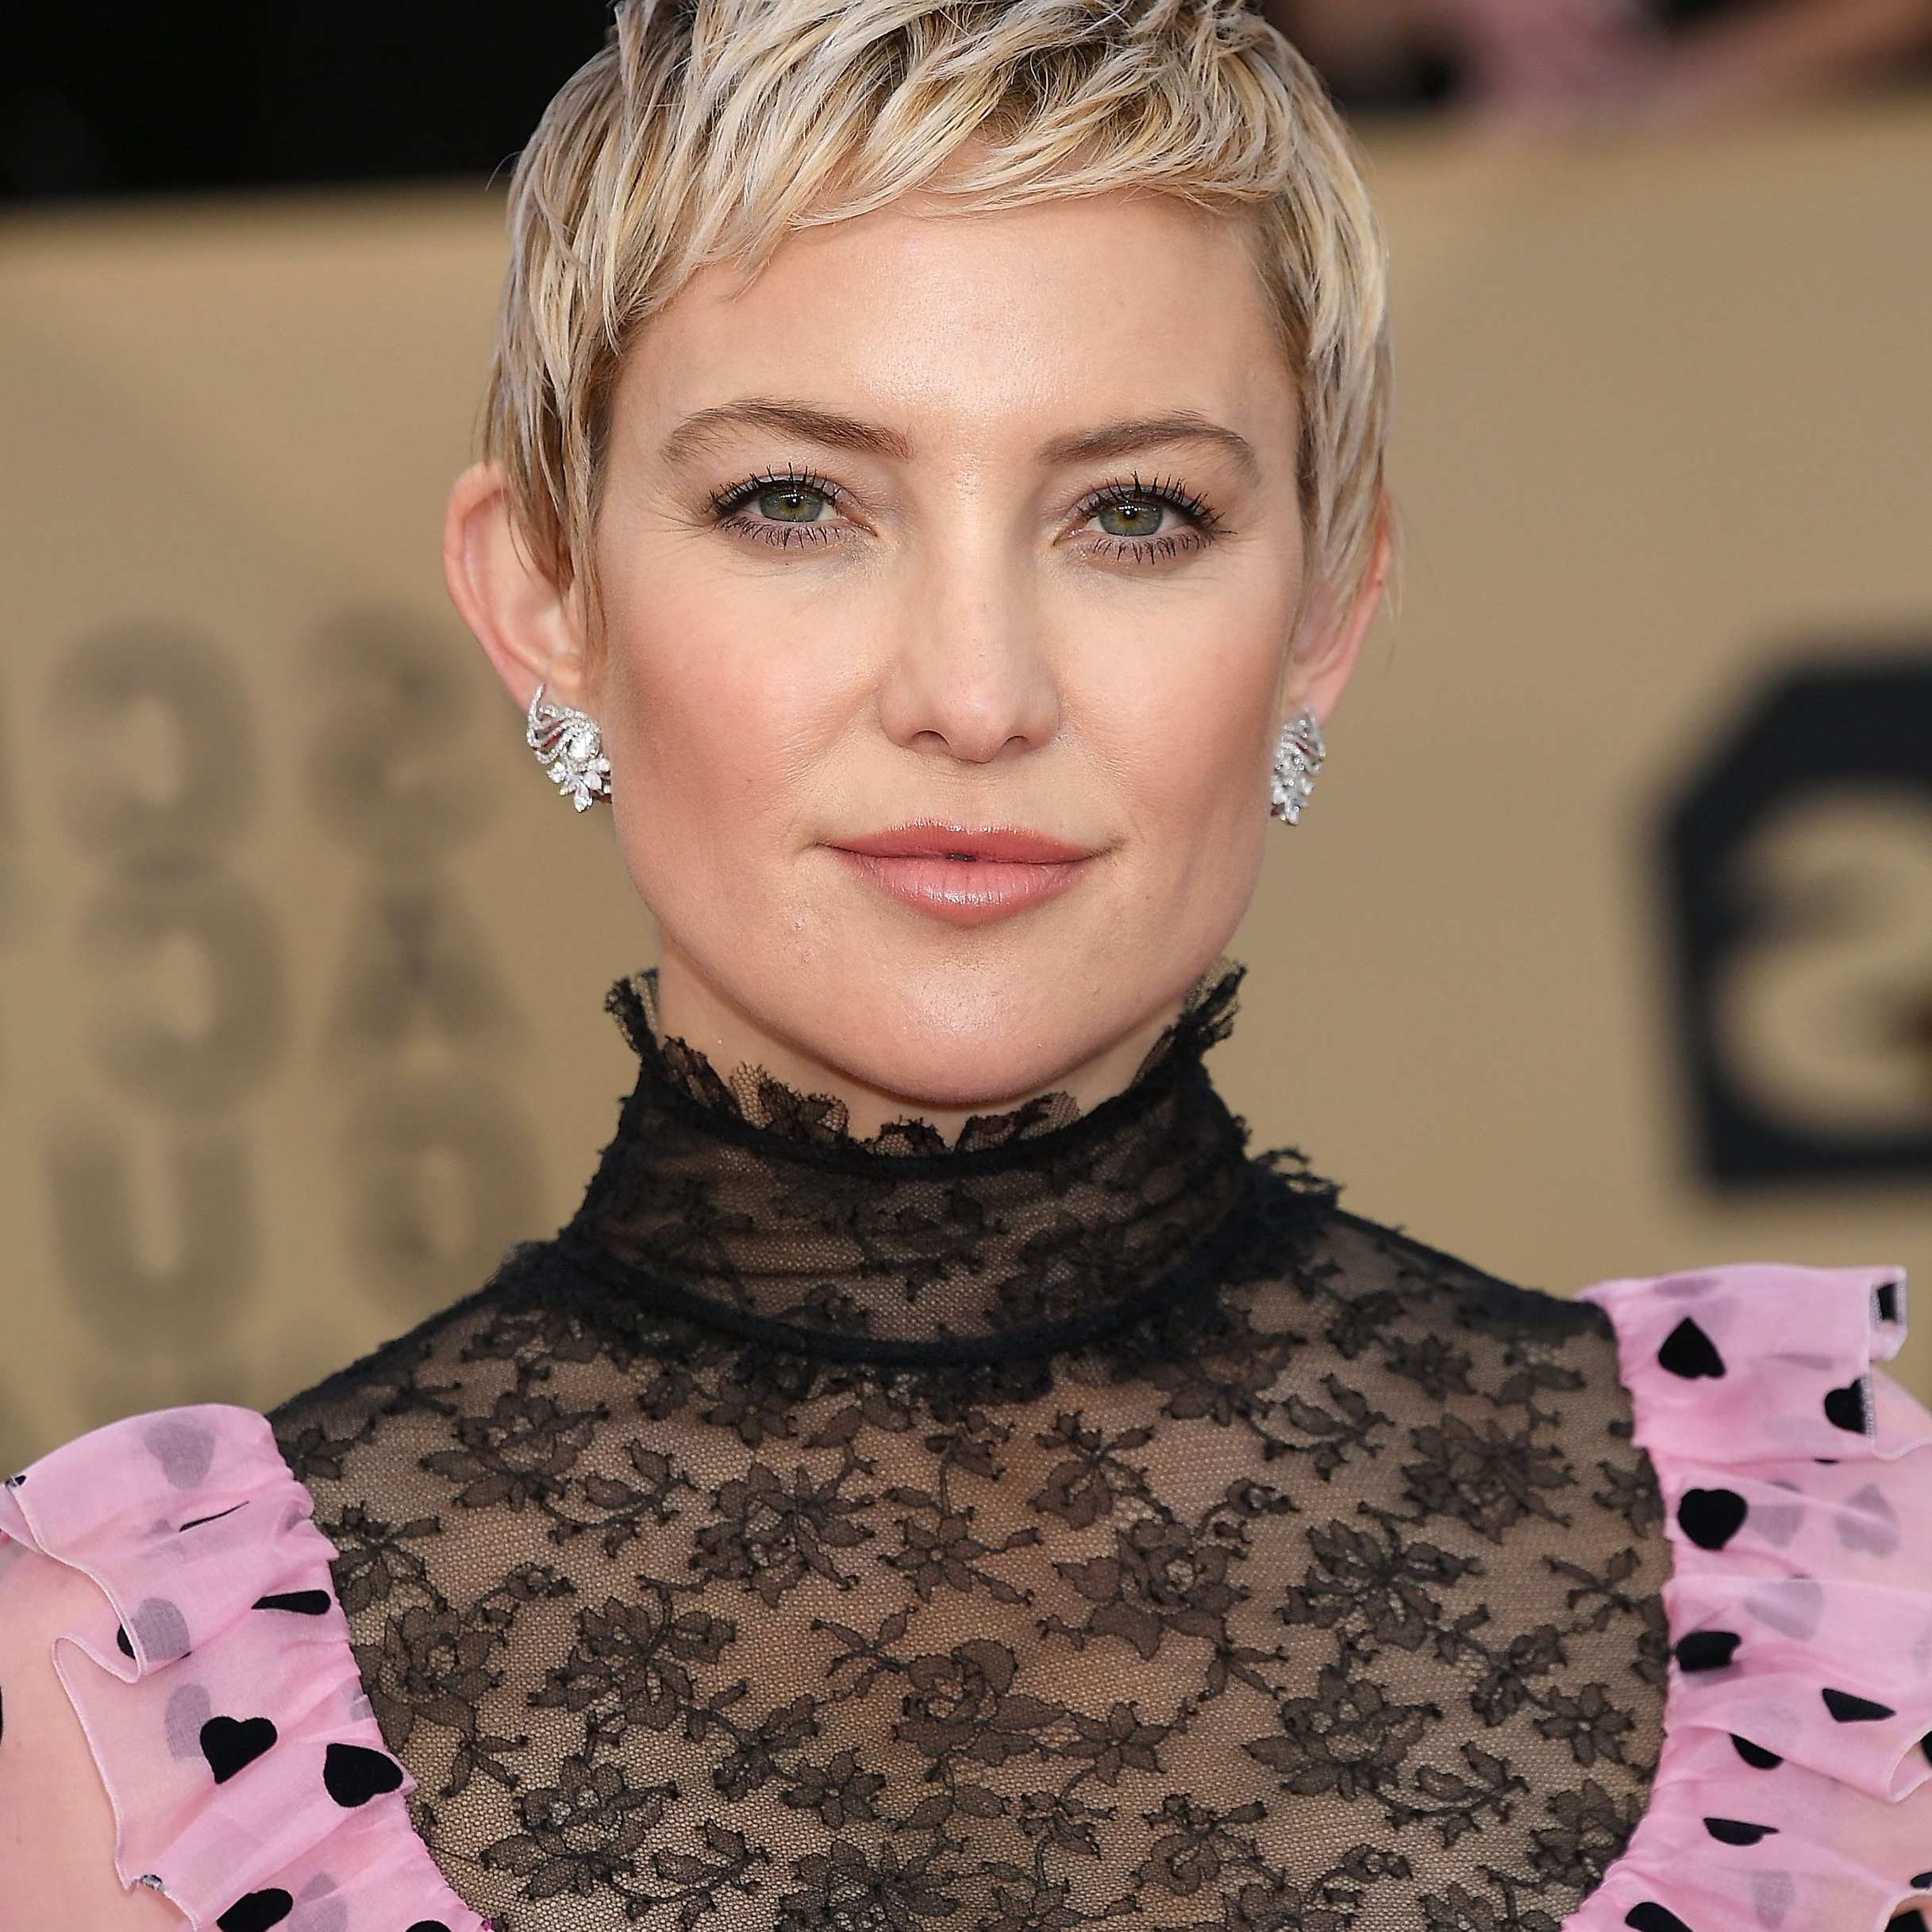 20 Classic And Cool Short Hairstyles For Older Women Intended For Elegant Short Bob Haircuts (View 7 of 20)